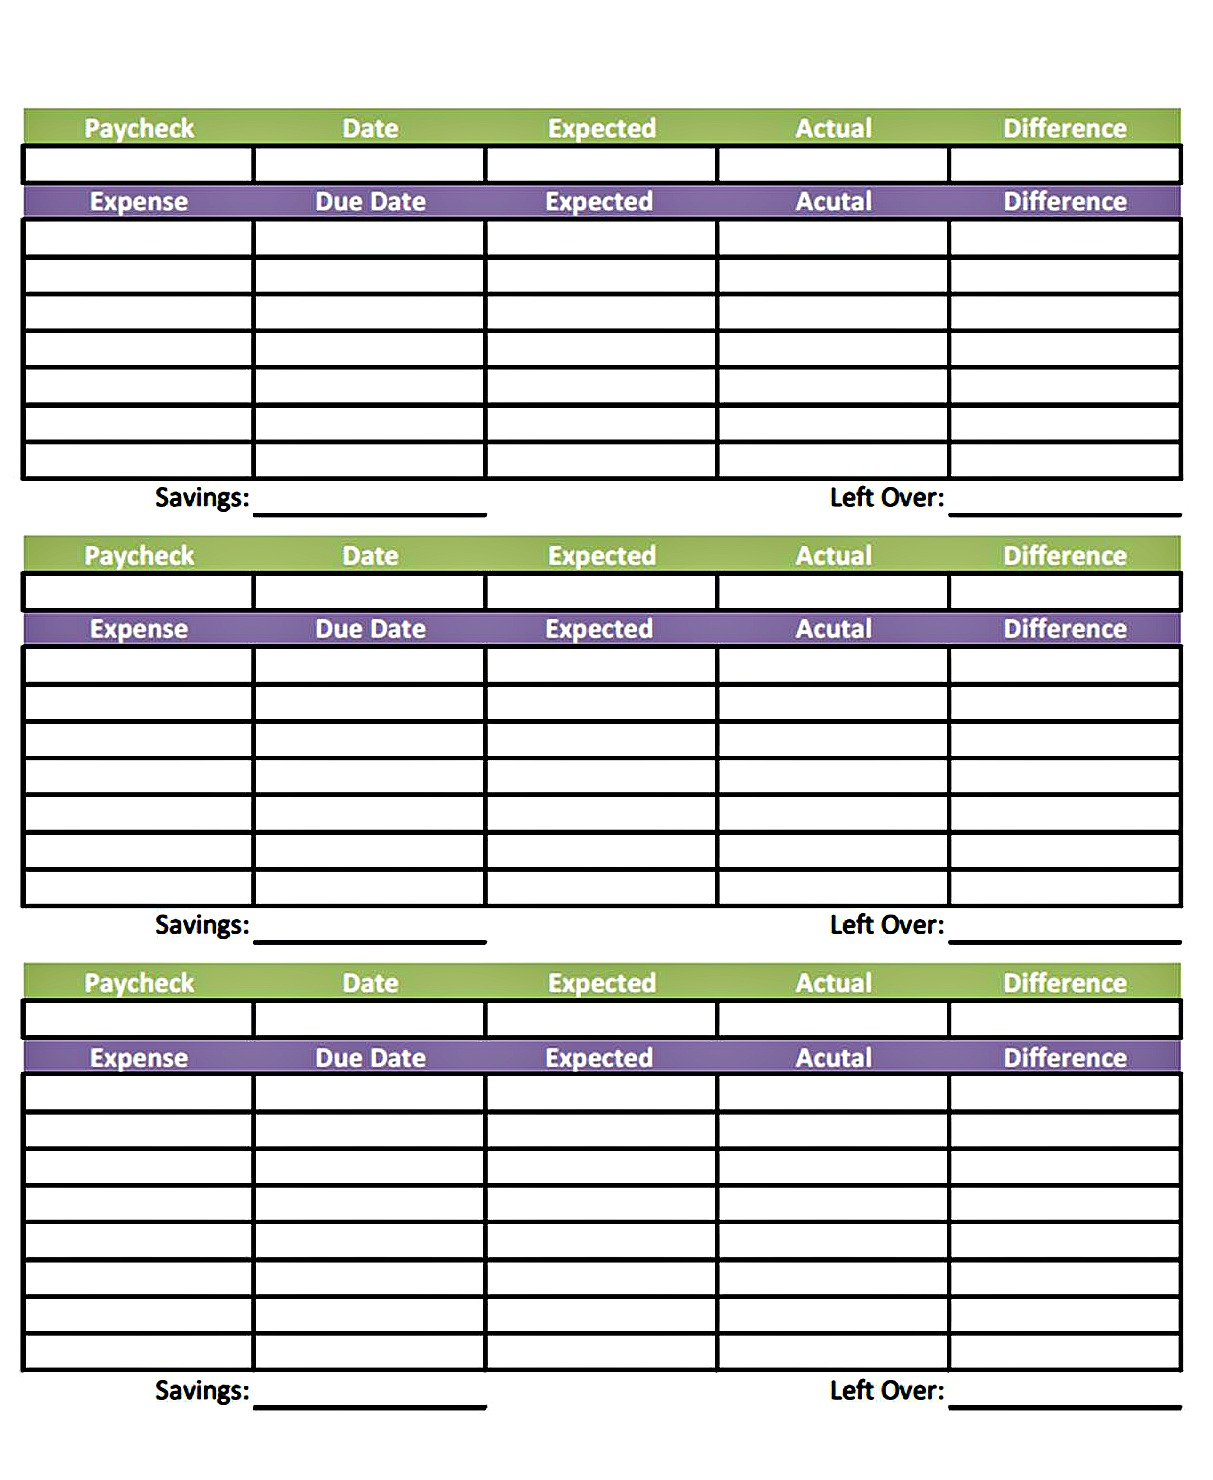 Printables Weekly Budget Worksheet Printable bonfires and wine livin paycheck to free printable just right click save each of the pictures or if you want file sent in an editable document so can make your